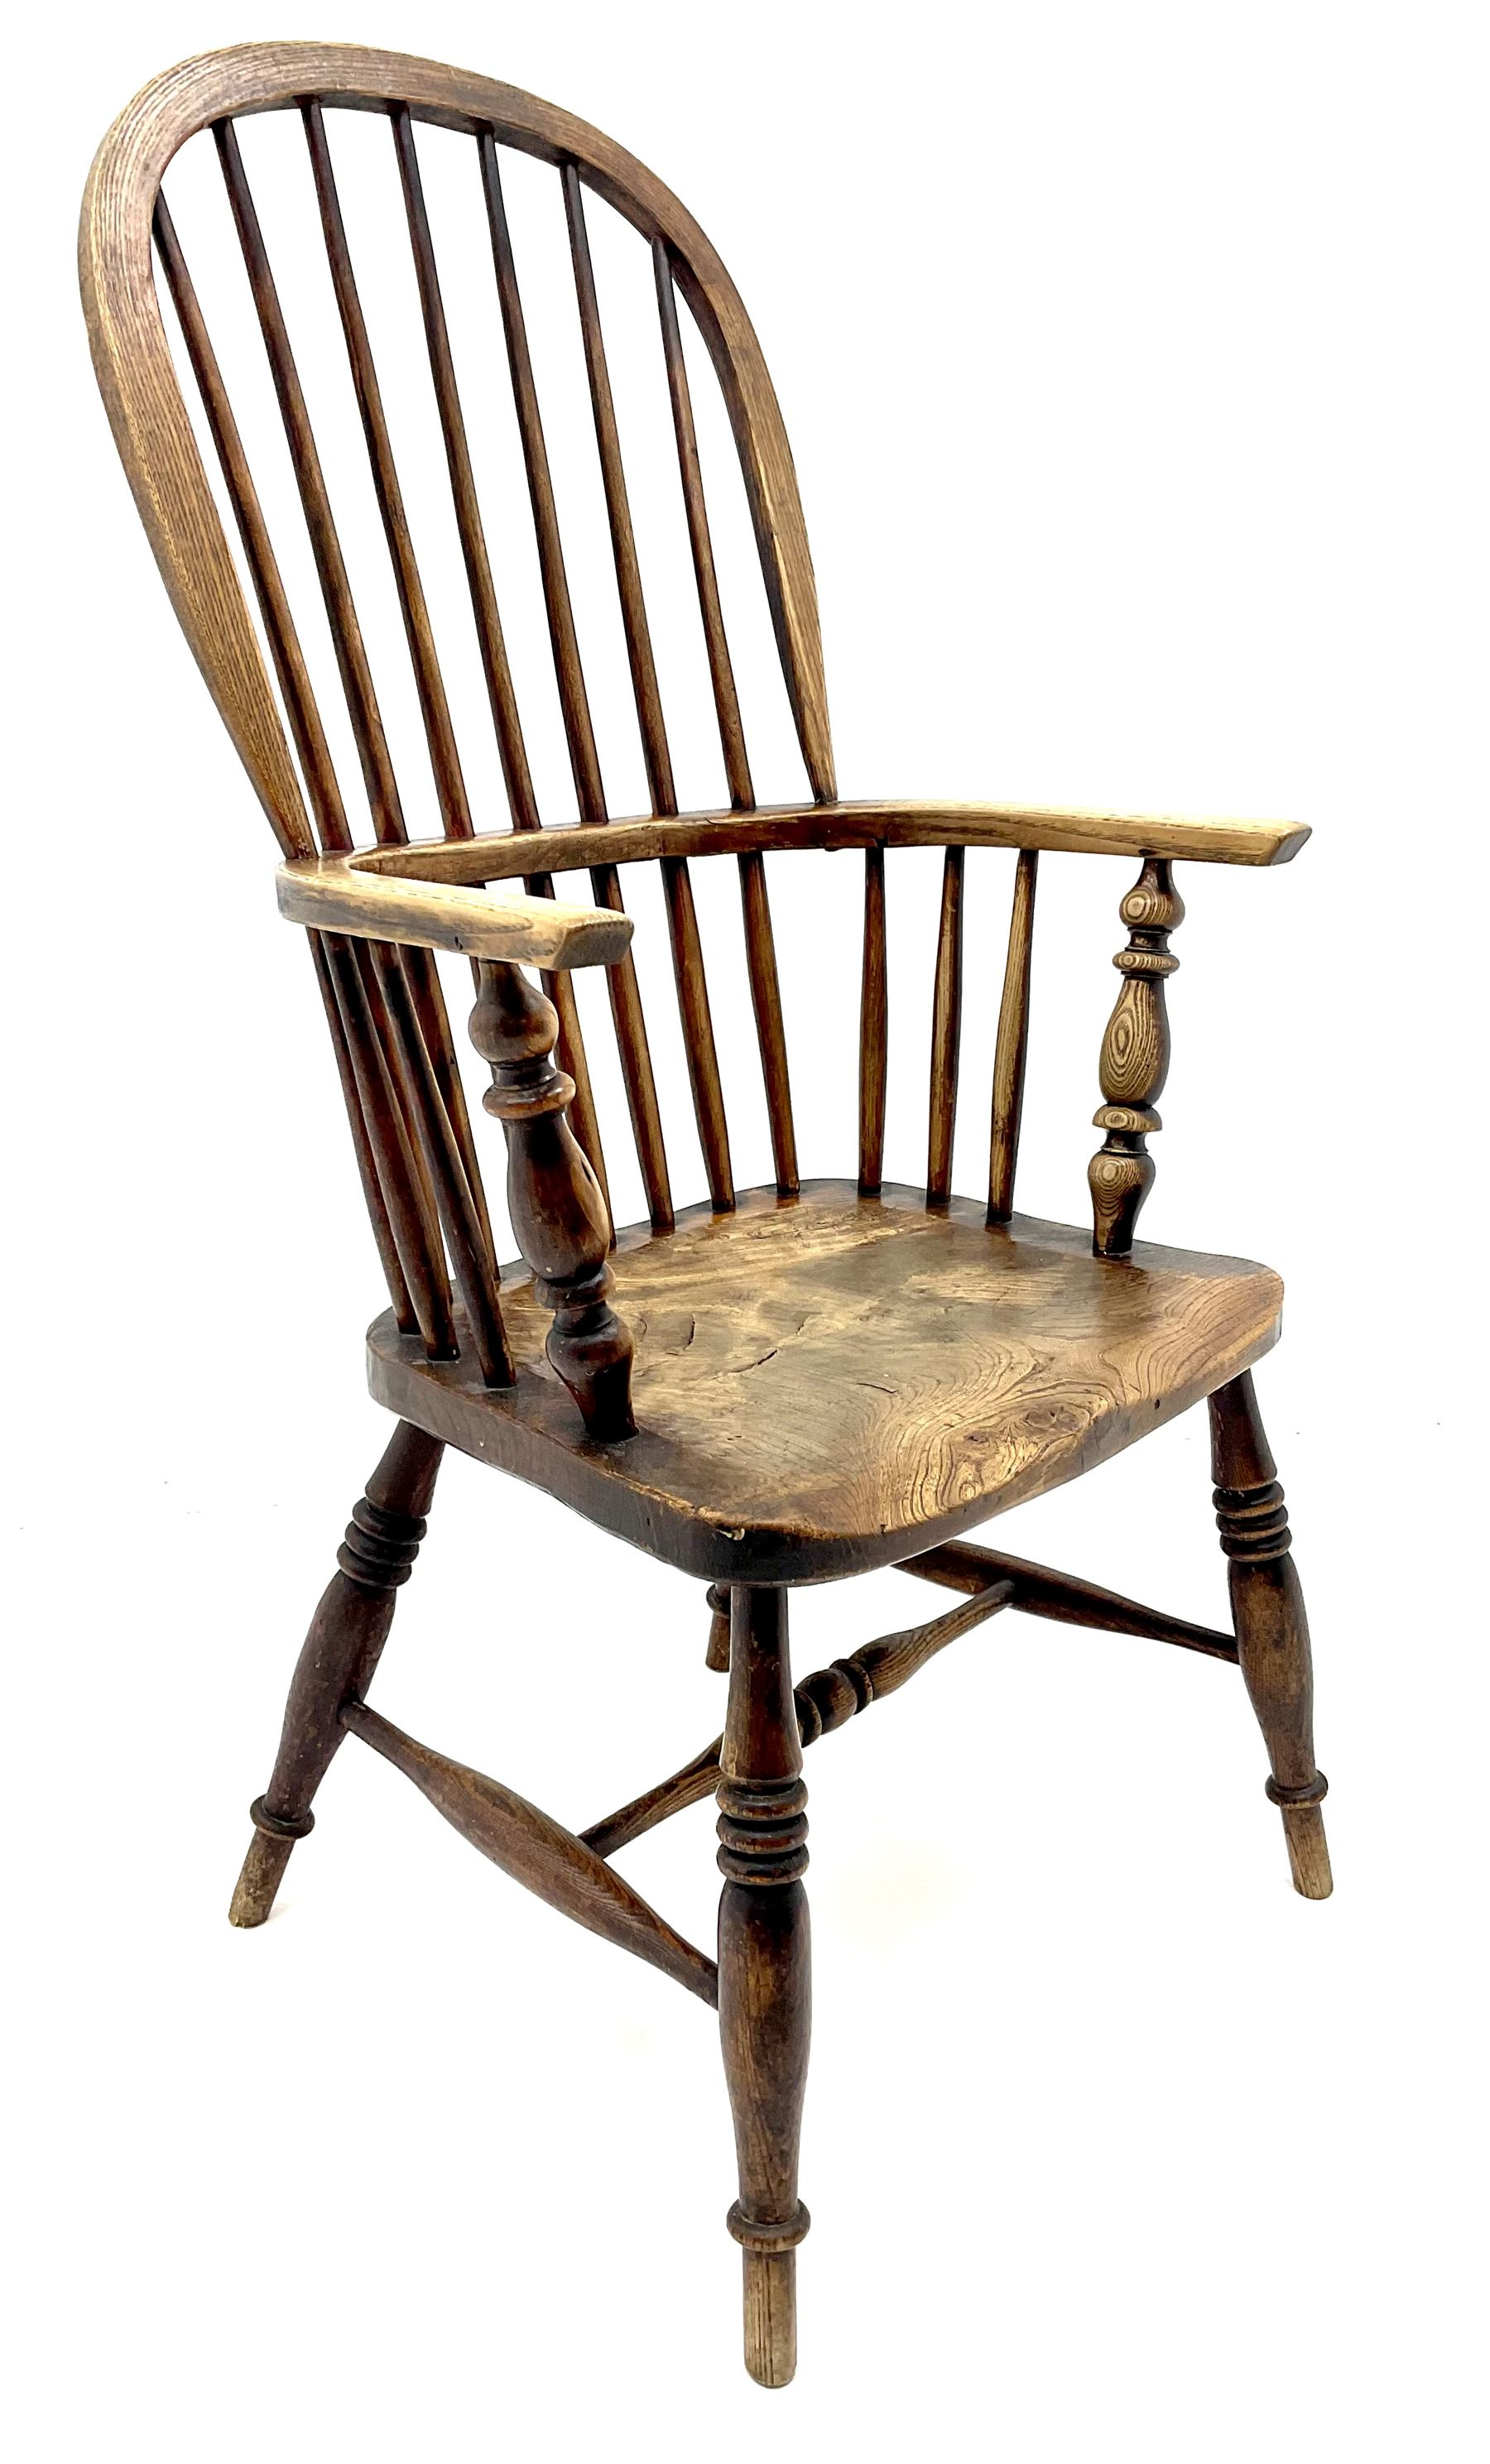 19th century ash and elm high back Windsor chair - Image 2 of 3